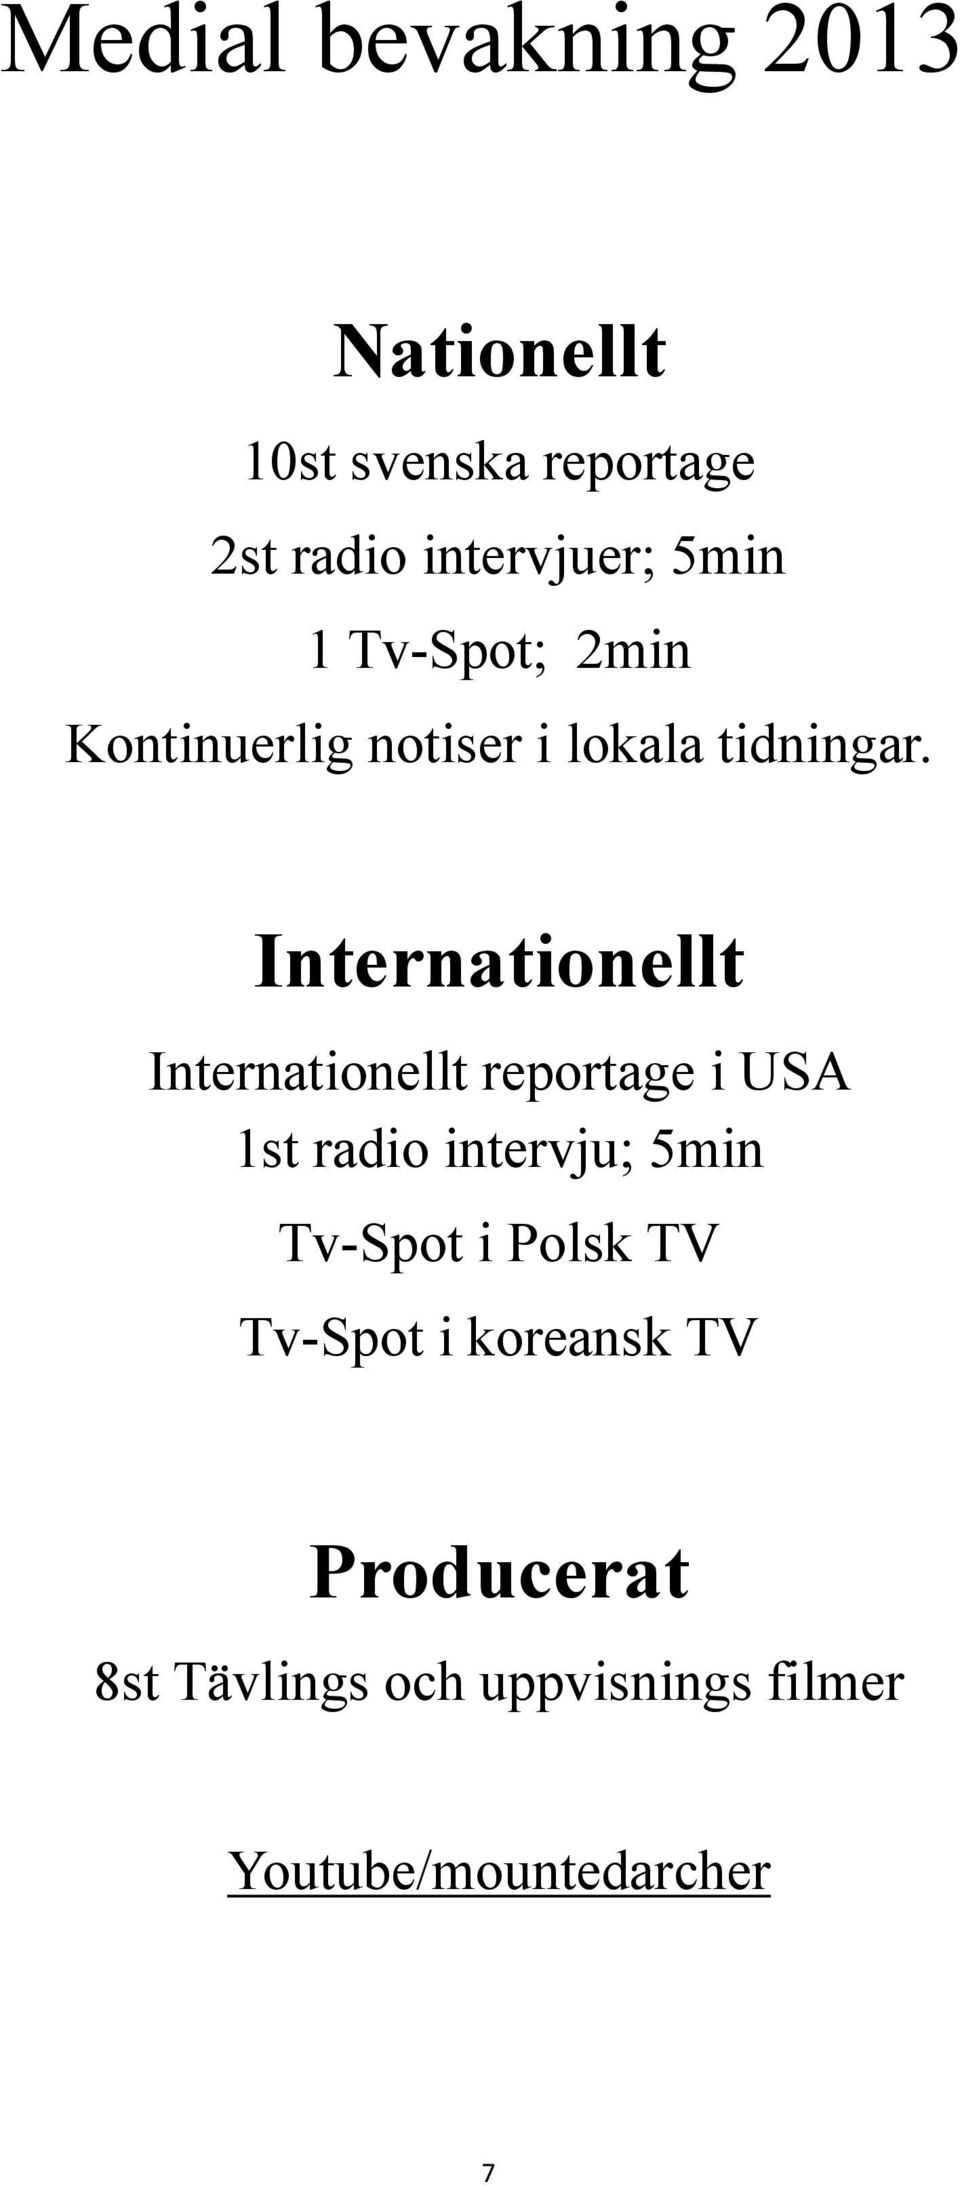 Internationellt Internationellt reportage i USA 1st radio intervju; 5min Tv-Spot